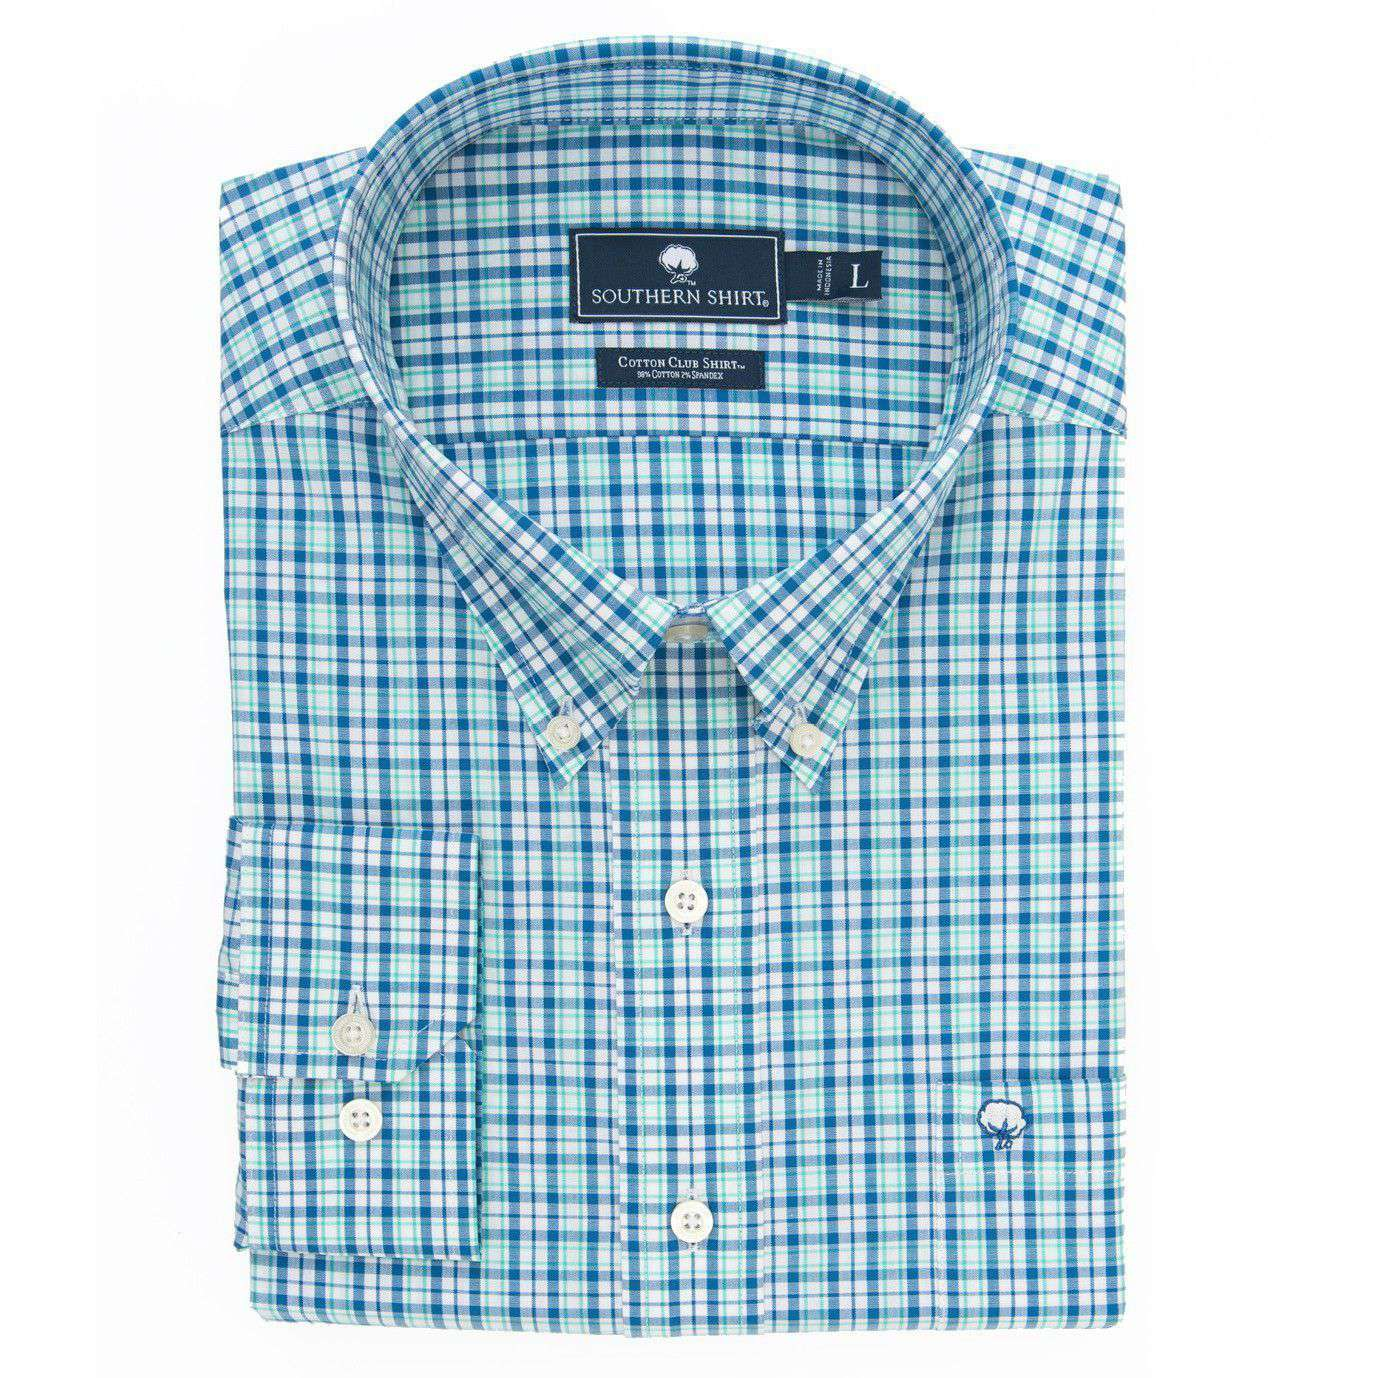 Men's Button Downs - Crawford Plaid Cotton Club Shirt In Regatta Blue By The Southern Shirt Co.